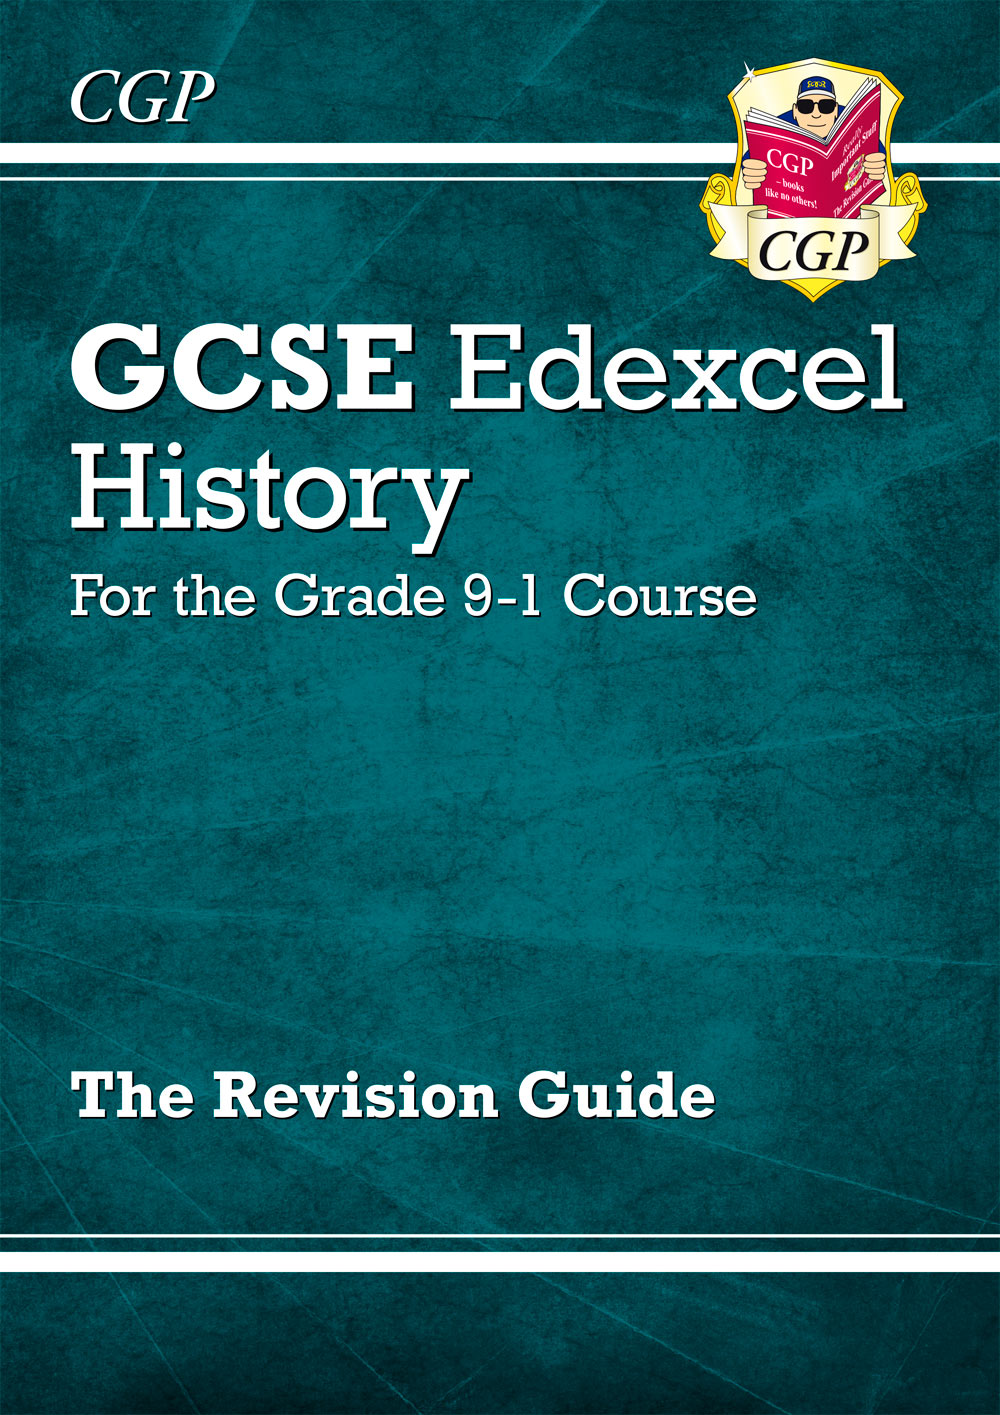 GCSE History Edexcel Revision Guide - for the Grade 9-1 Course